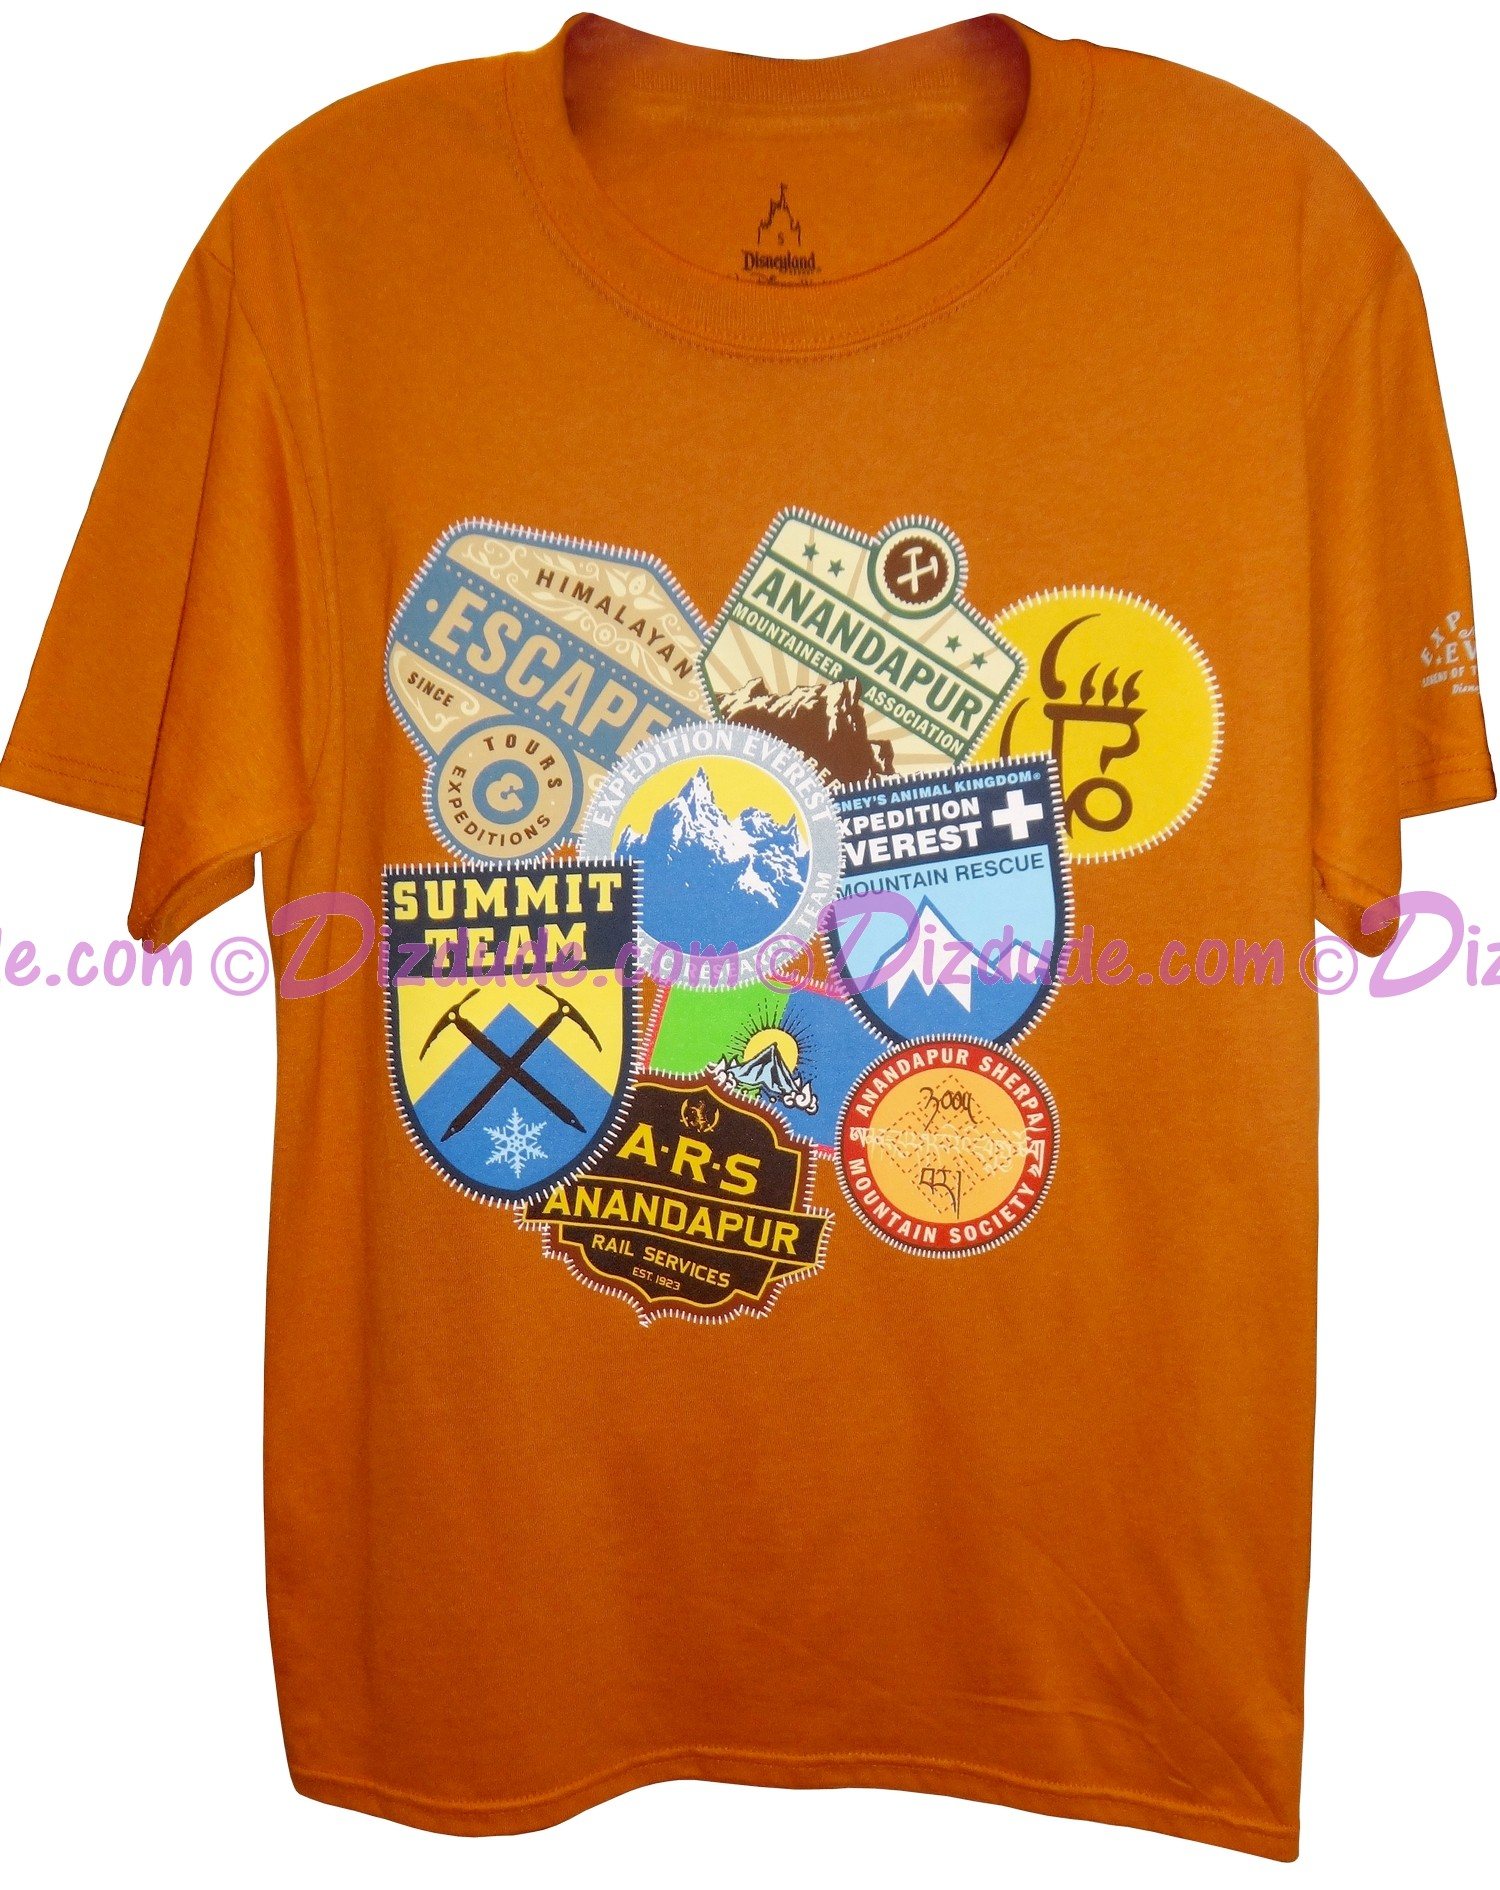 Disney Animal Kingdoms Expedition Everest Patches Adult T-Shirt (Tee, Tshirt or T shirt)